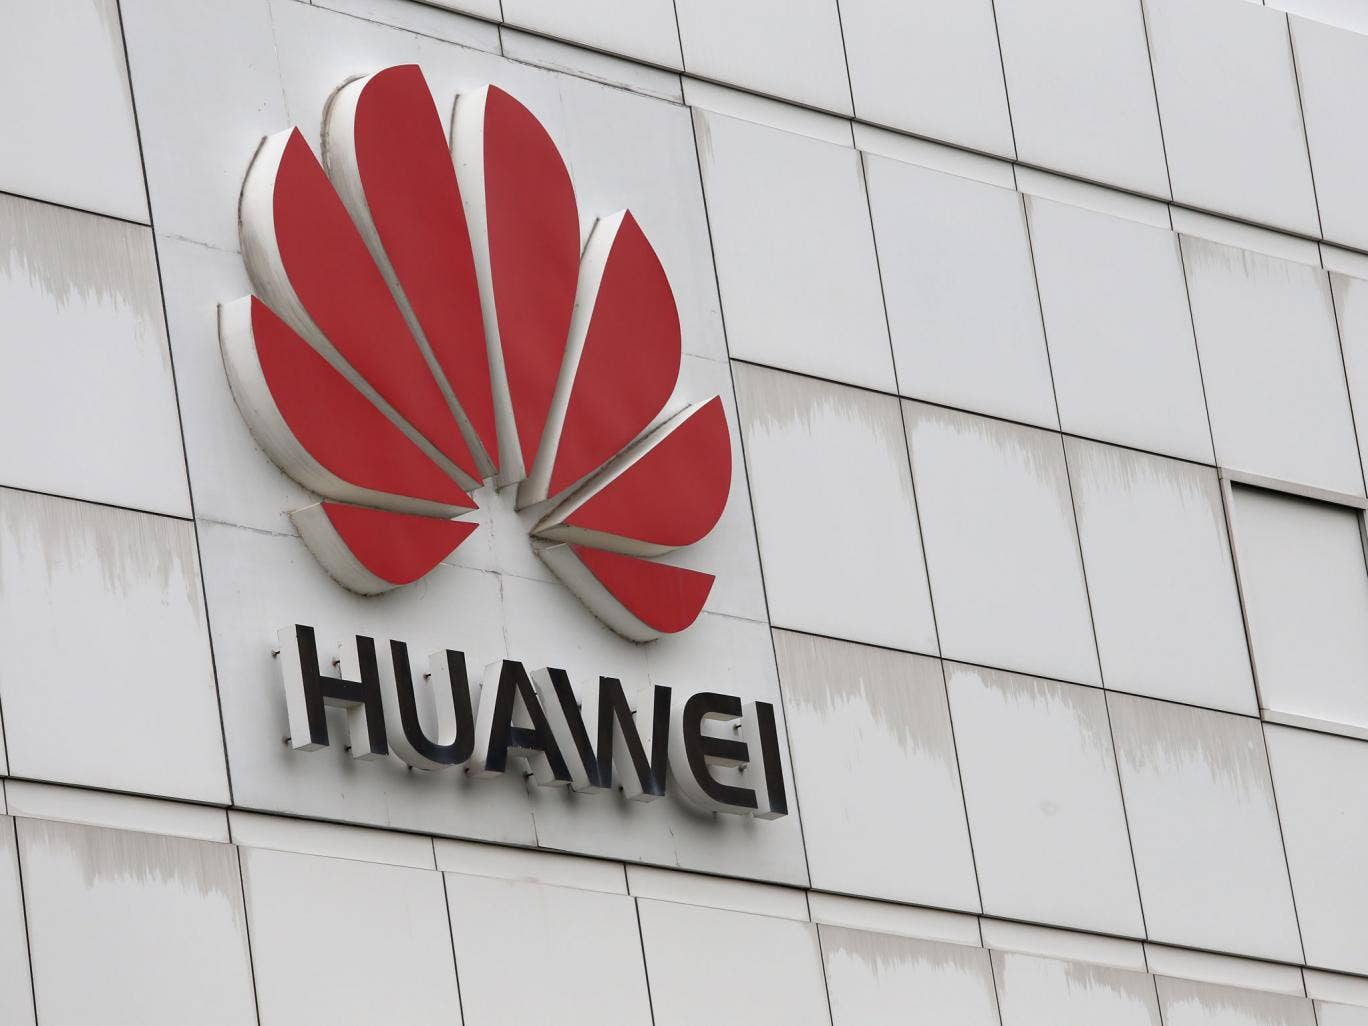 The Intelligence and Security Committee (ISC) expressed 'shock' at how the multinational giant Huawei established a huge presence in the UK